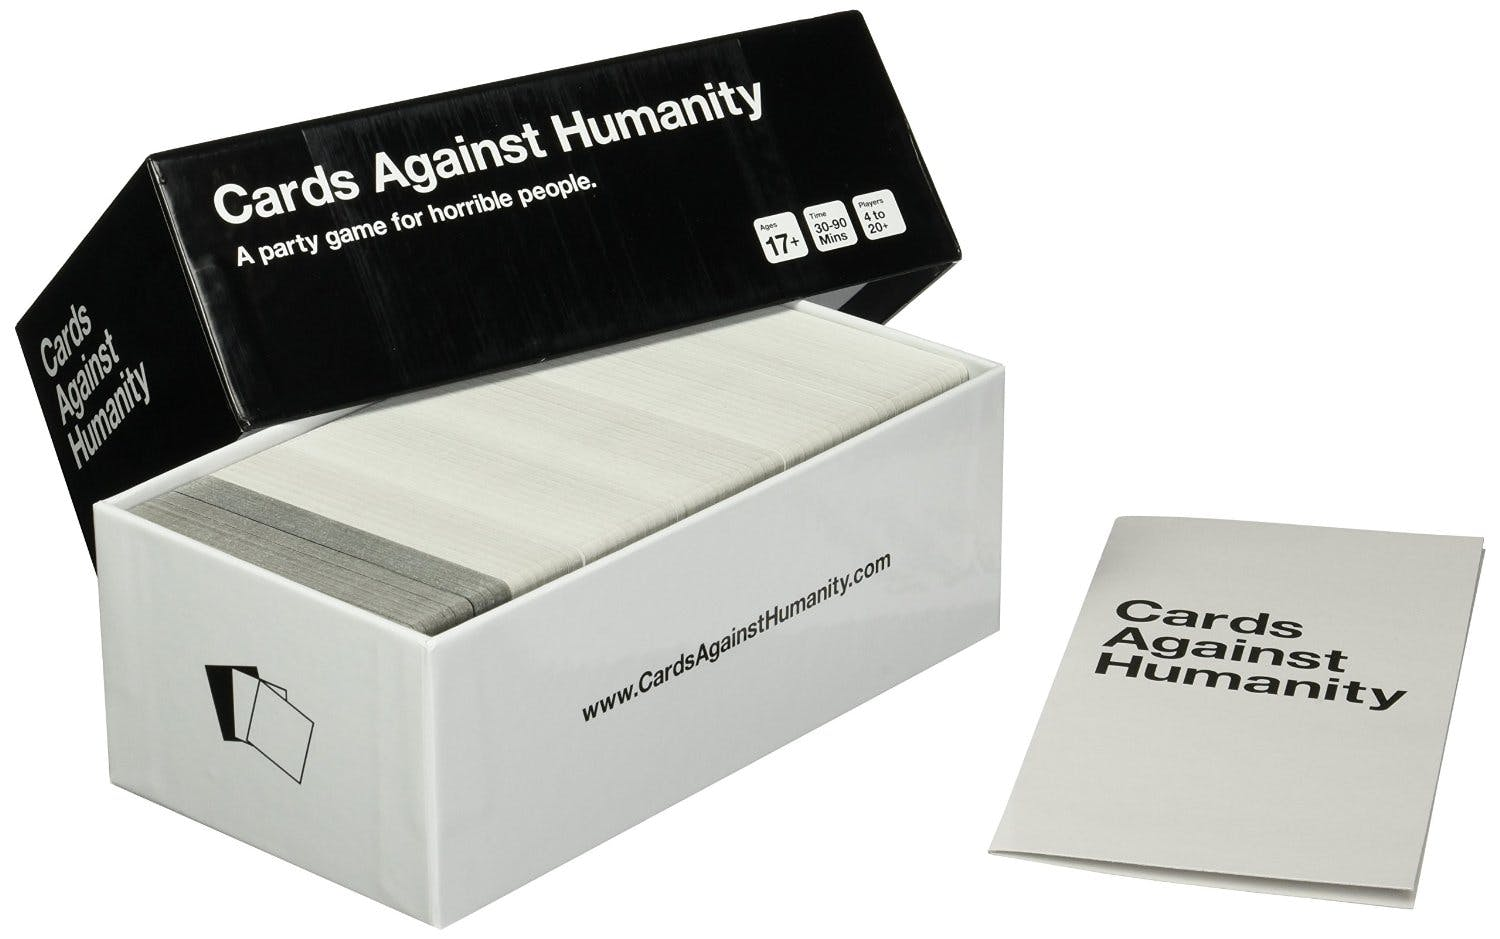 Cards Against Humanity wealth inequality